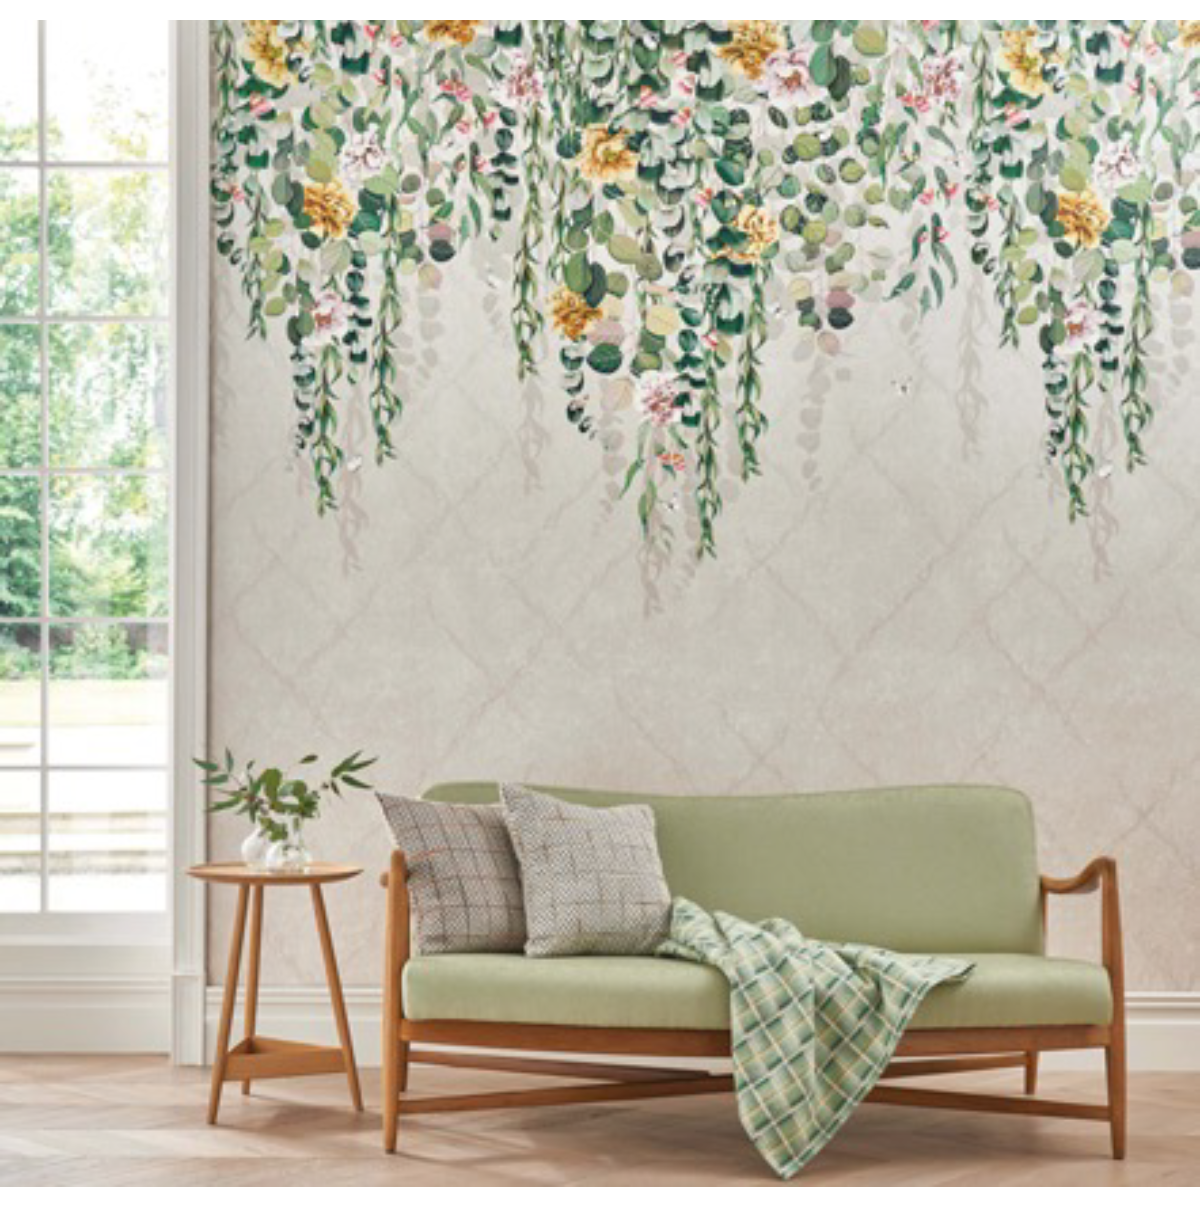 Green sofa from Osborne & Little for the Biophilic Design blog post from Dovetail Interiors